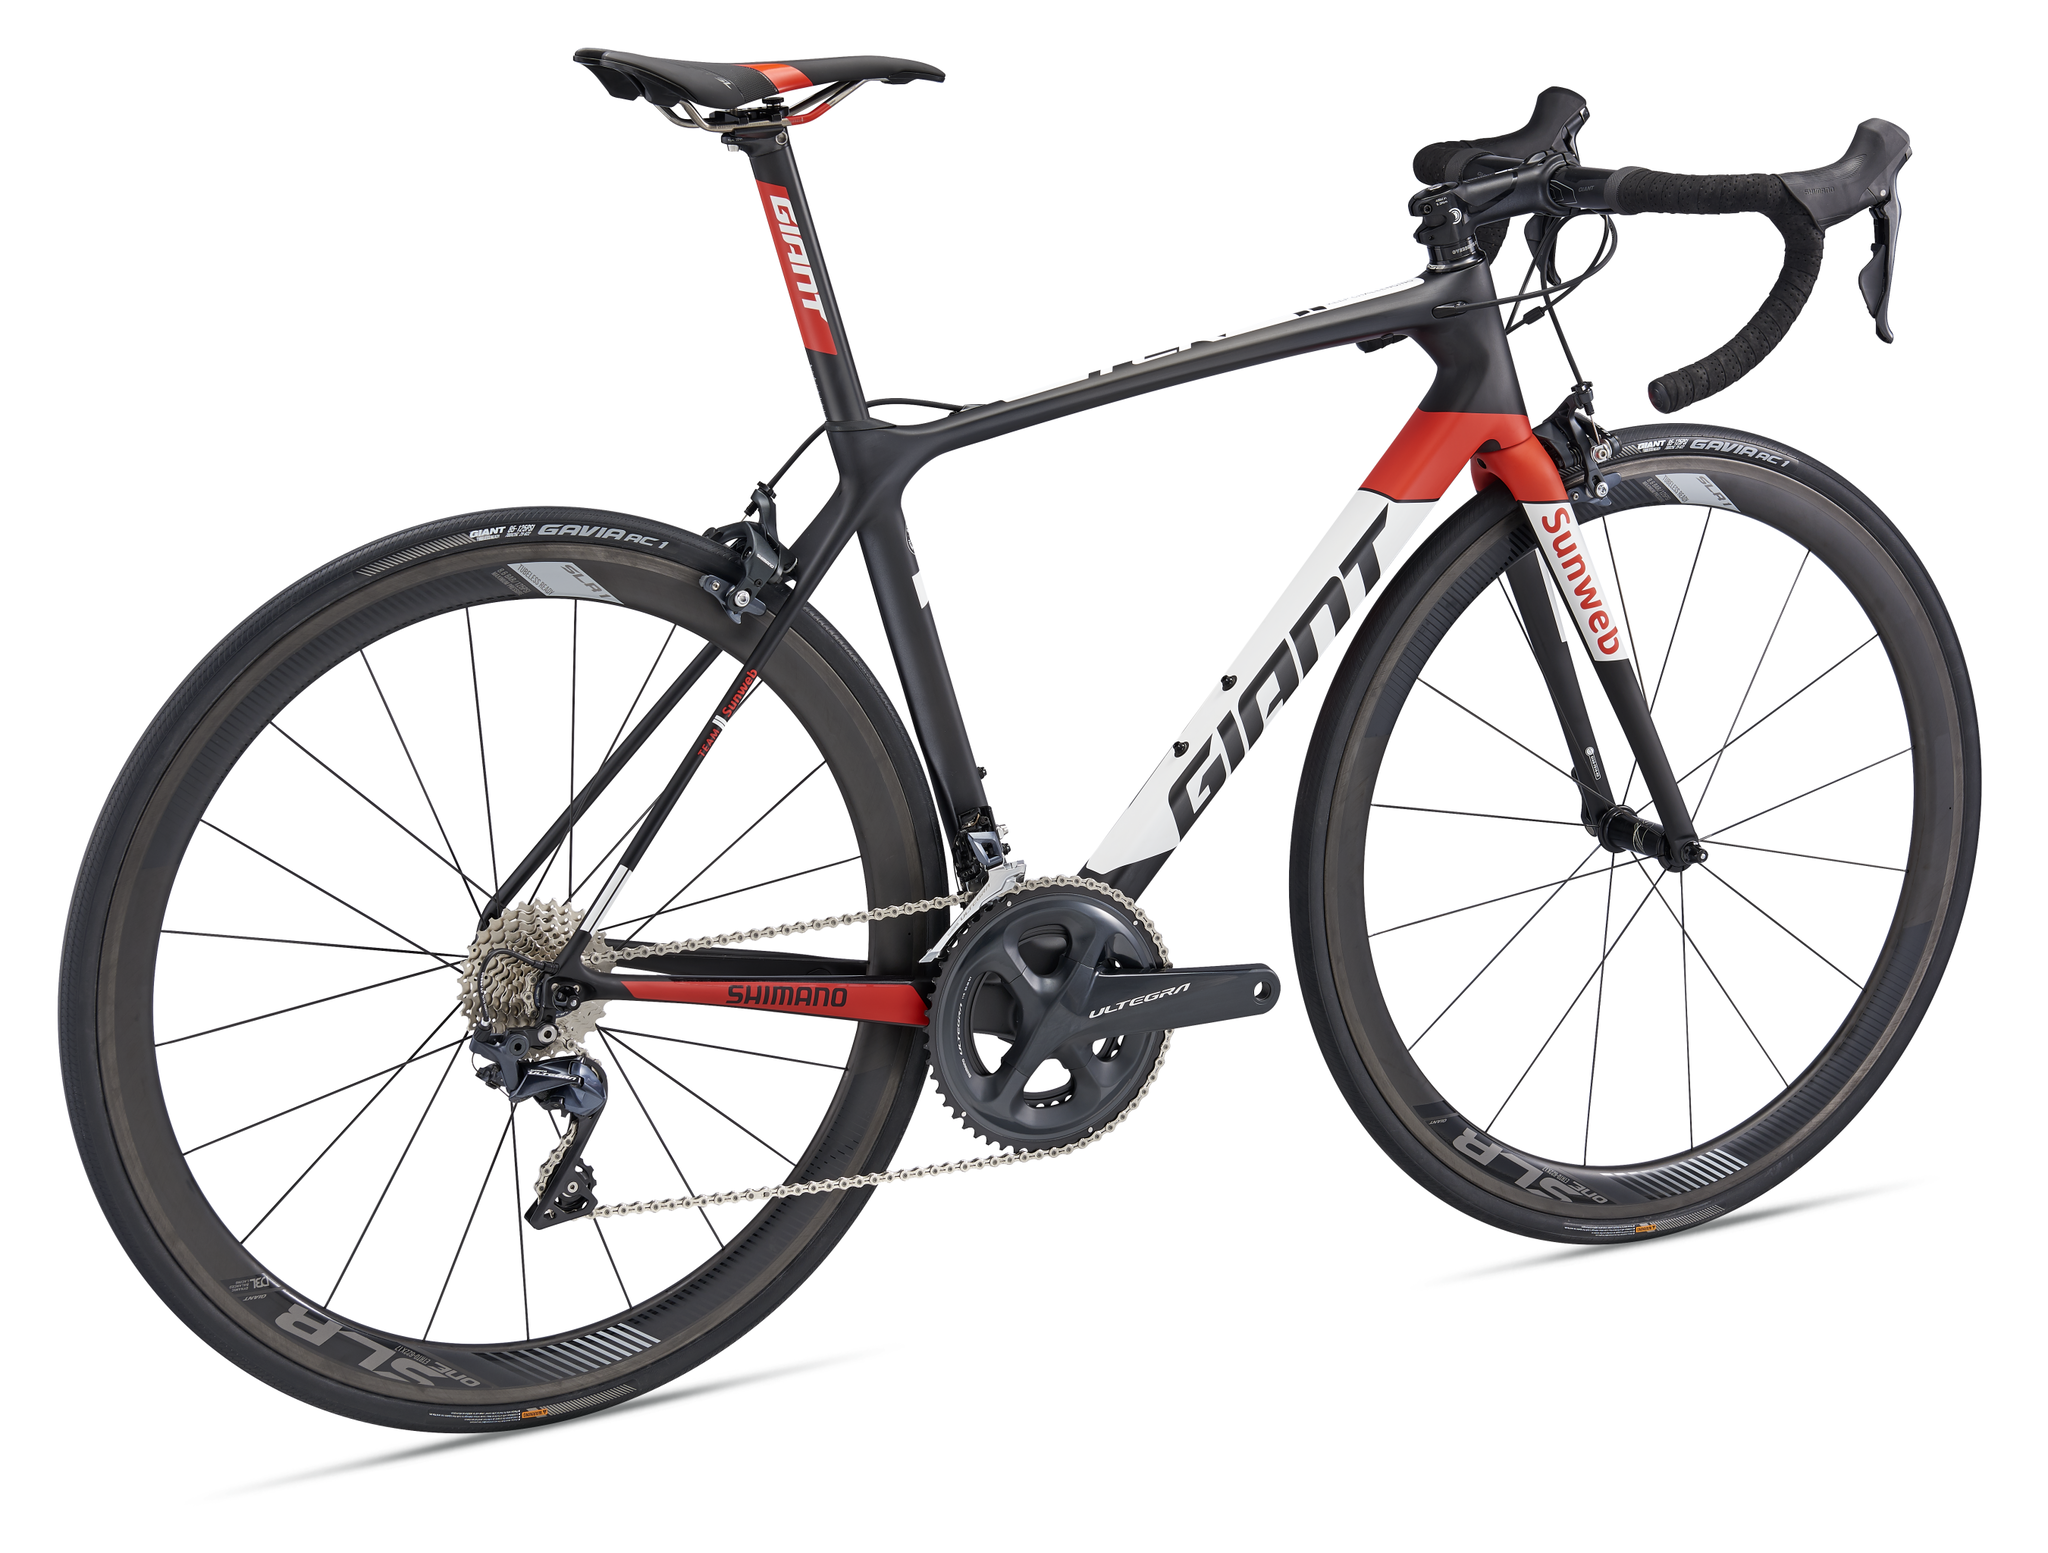 fe478006d29 Giant TCR Advanced Pro Team 2019 (f14) - Kozy's Chicago Bike Shops |  Chicago Bike Stores, Bicycles, Cycling, Bike Repair